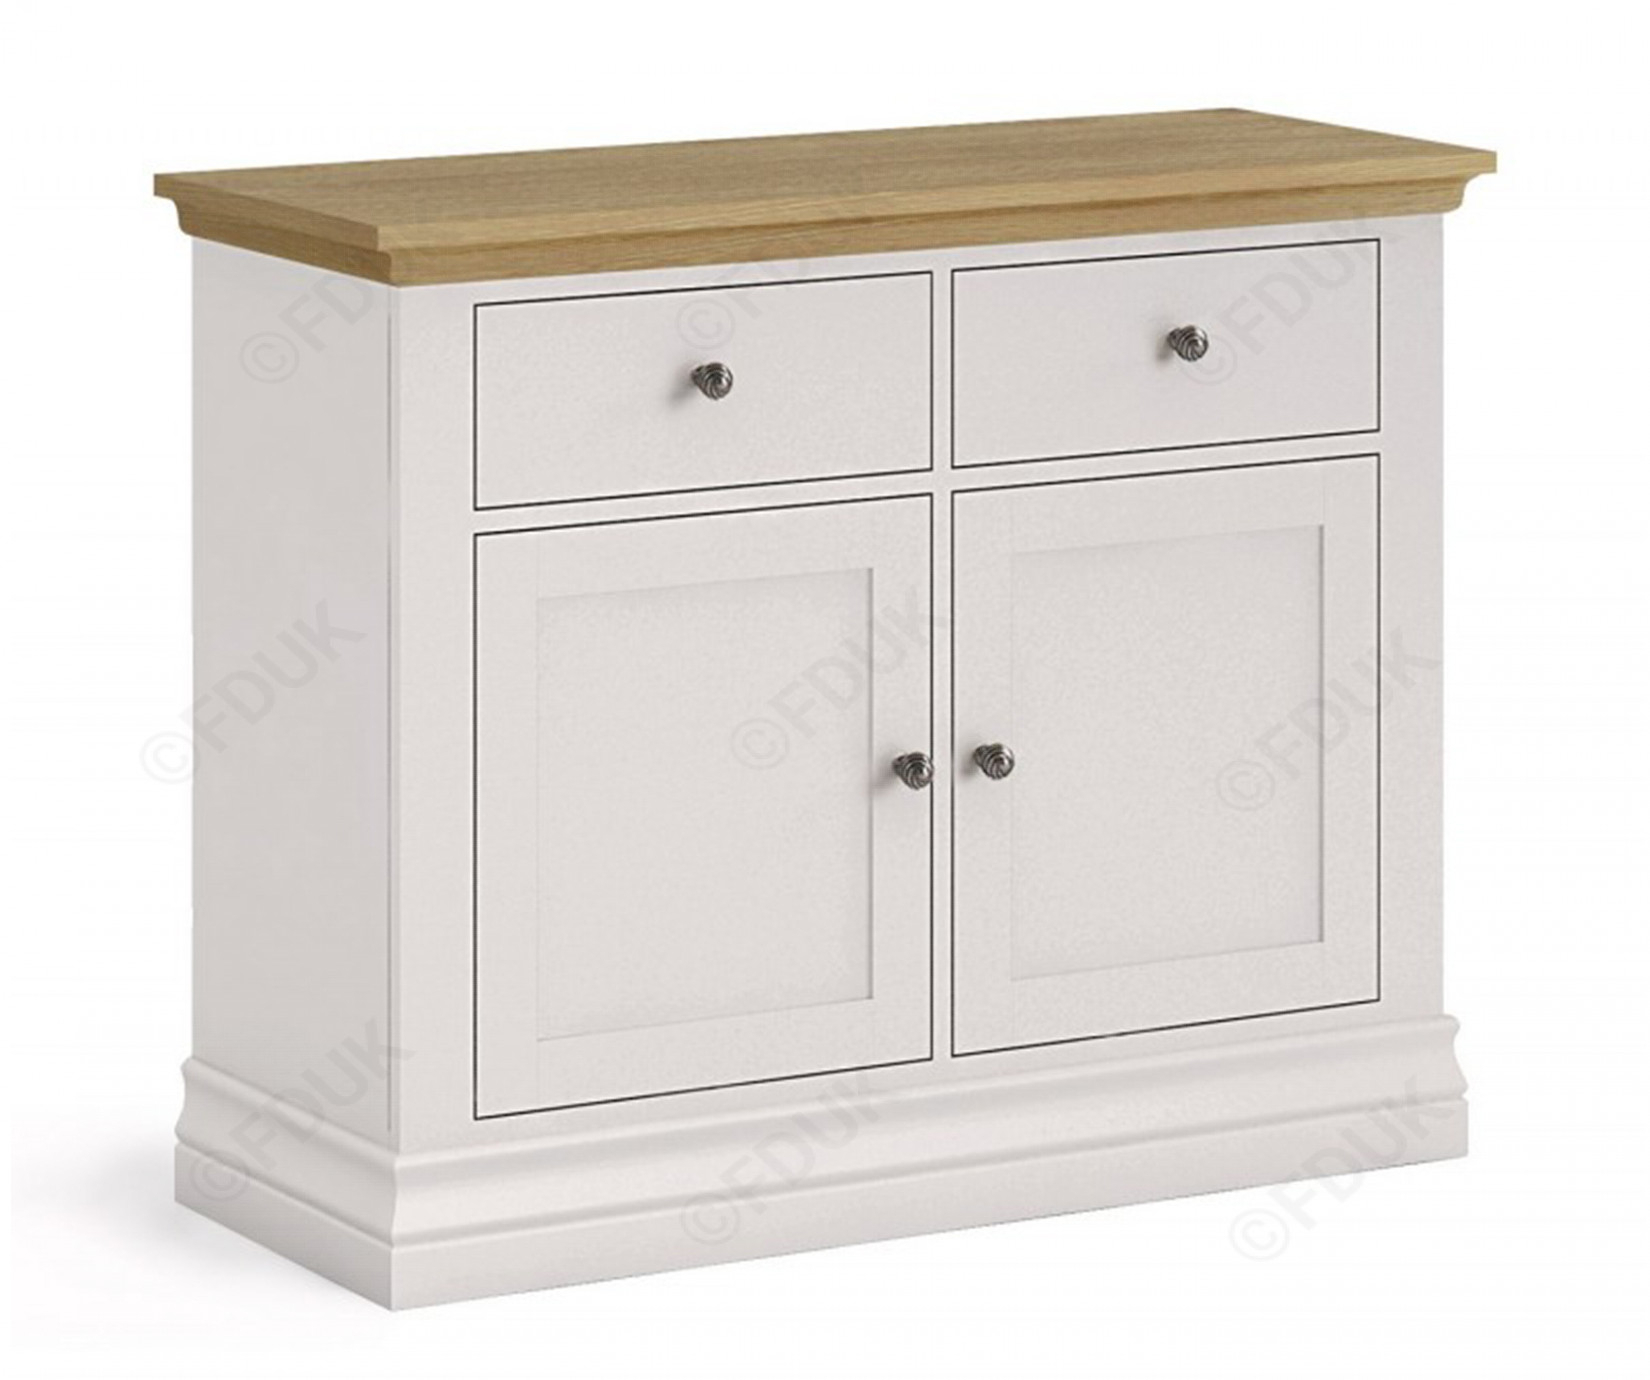 Corndell Annecy Small Sideboard Fduk Best Price Guarantee We Will Beat Our  Competitors Price! Give Our Sales Team A Call On 0116 235 77 86 And We Will for Annecy Sideboards (Image 18 of 30)